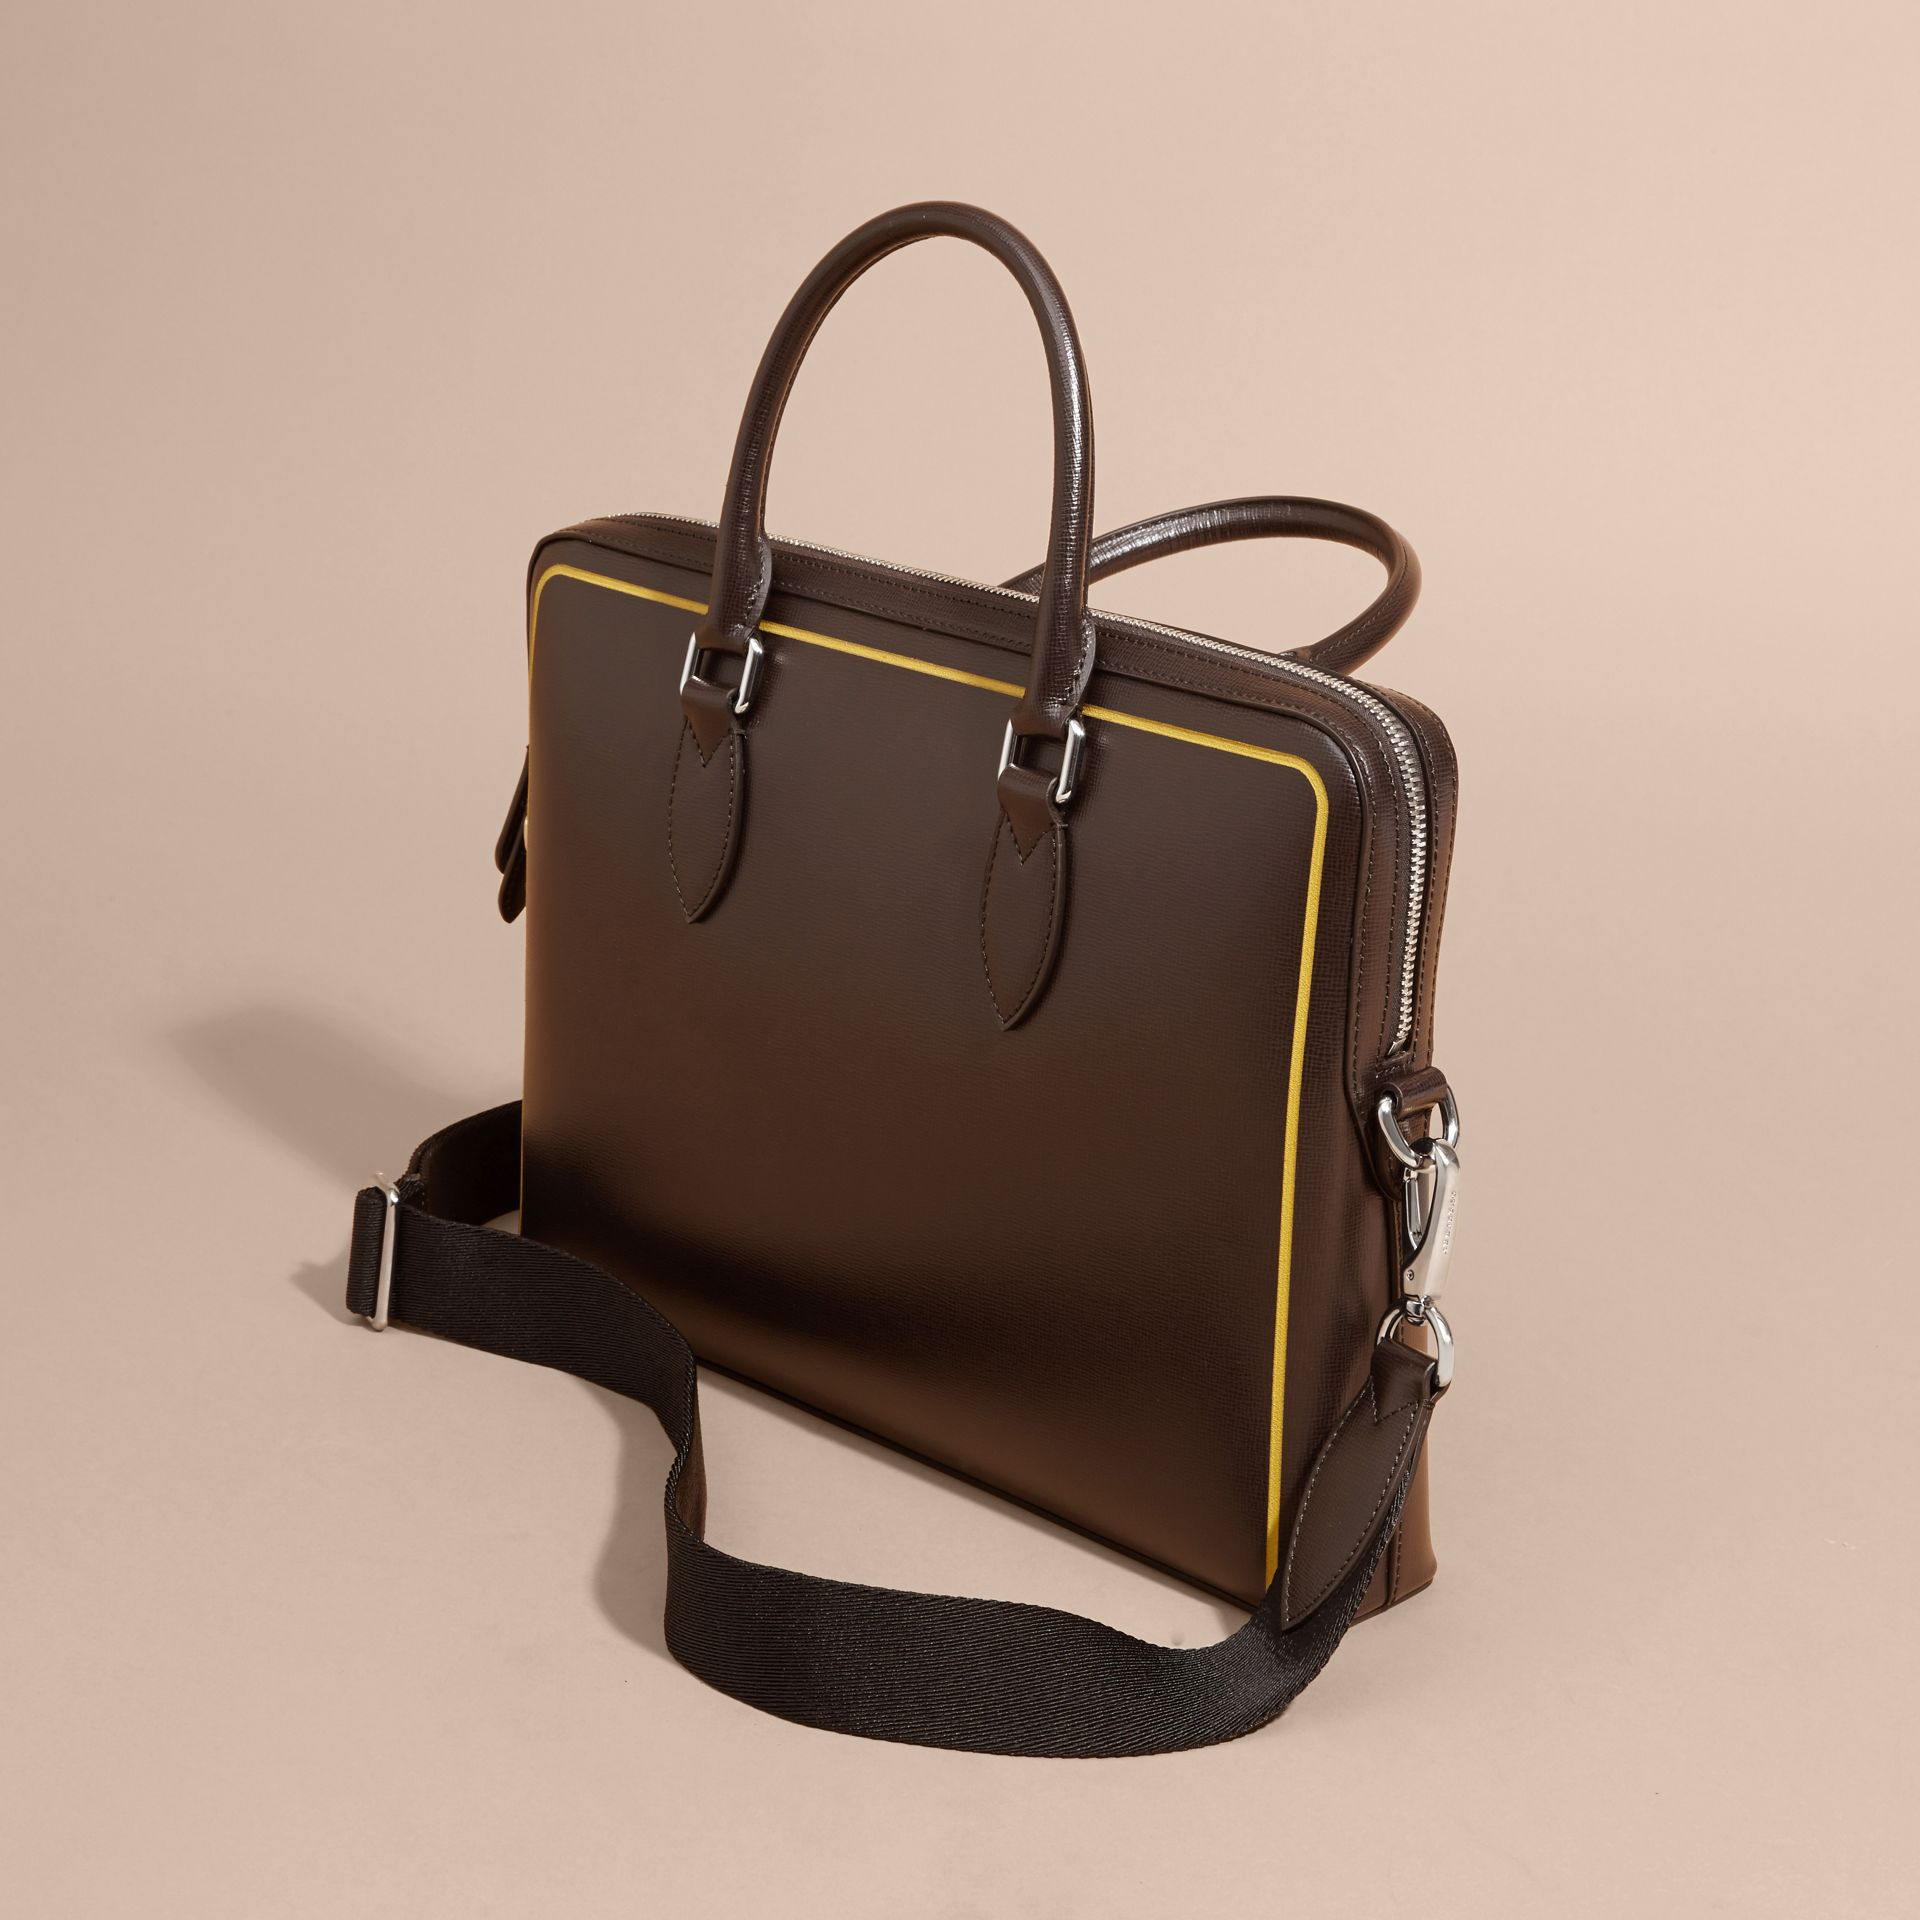 Sac The Barrow fin en cuir London avec bordure contrastante (Poivre) - Homme | Burberry - photo de la galerie 5